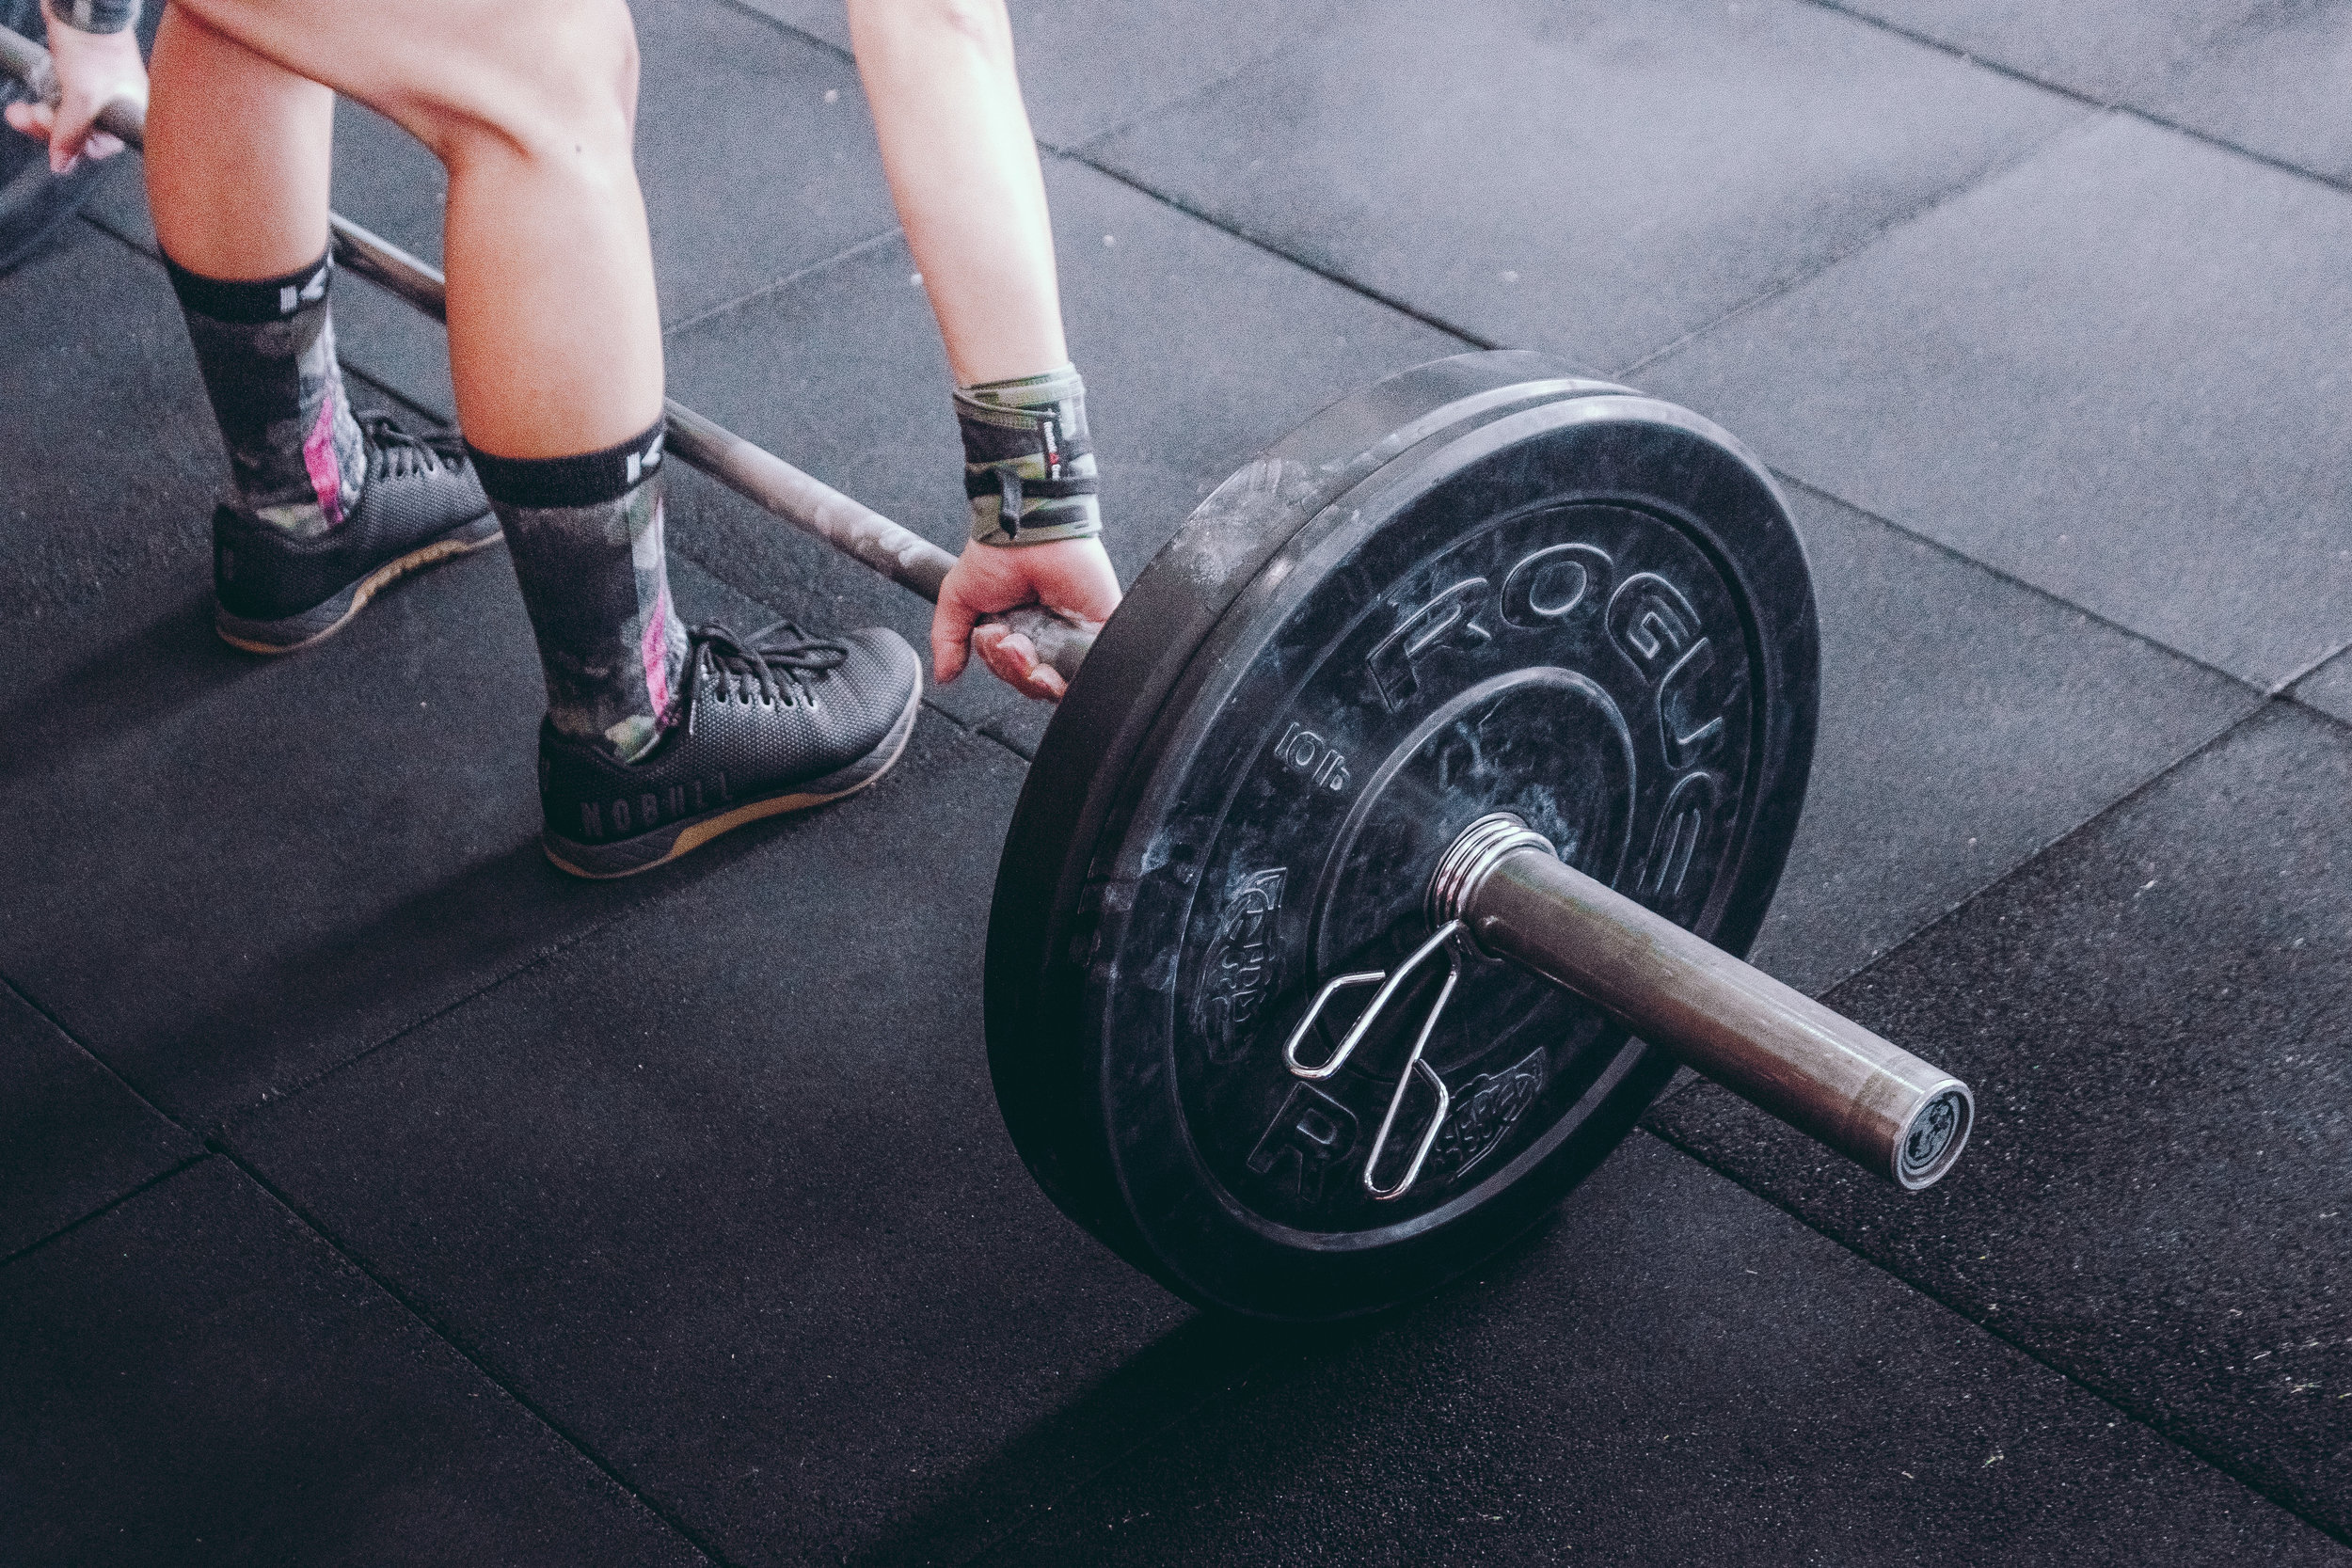 CrossFit at Jacksonville State University - Earn college credit while getting fit… it's a no brainer. You're a JSU Student who's curious about CrossFit, and also need some extra elective hours for school? Look no further. HPE 147 & 148